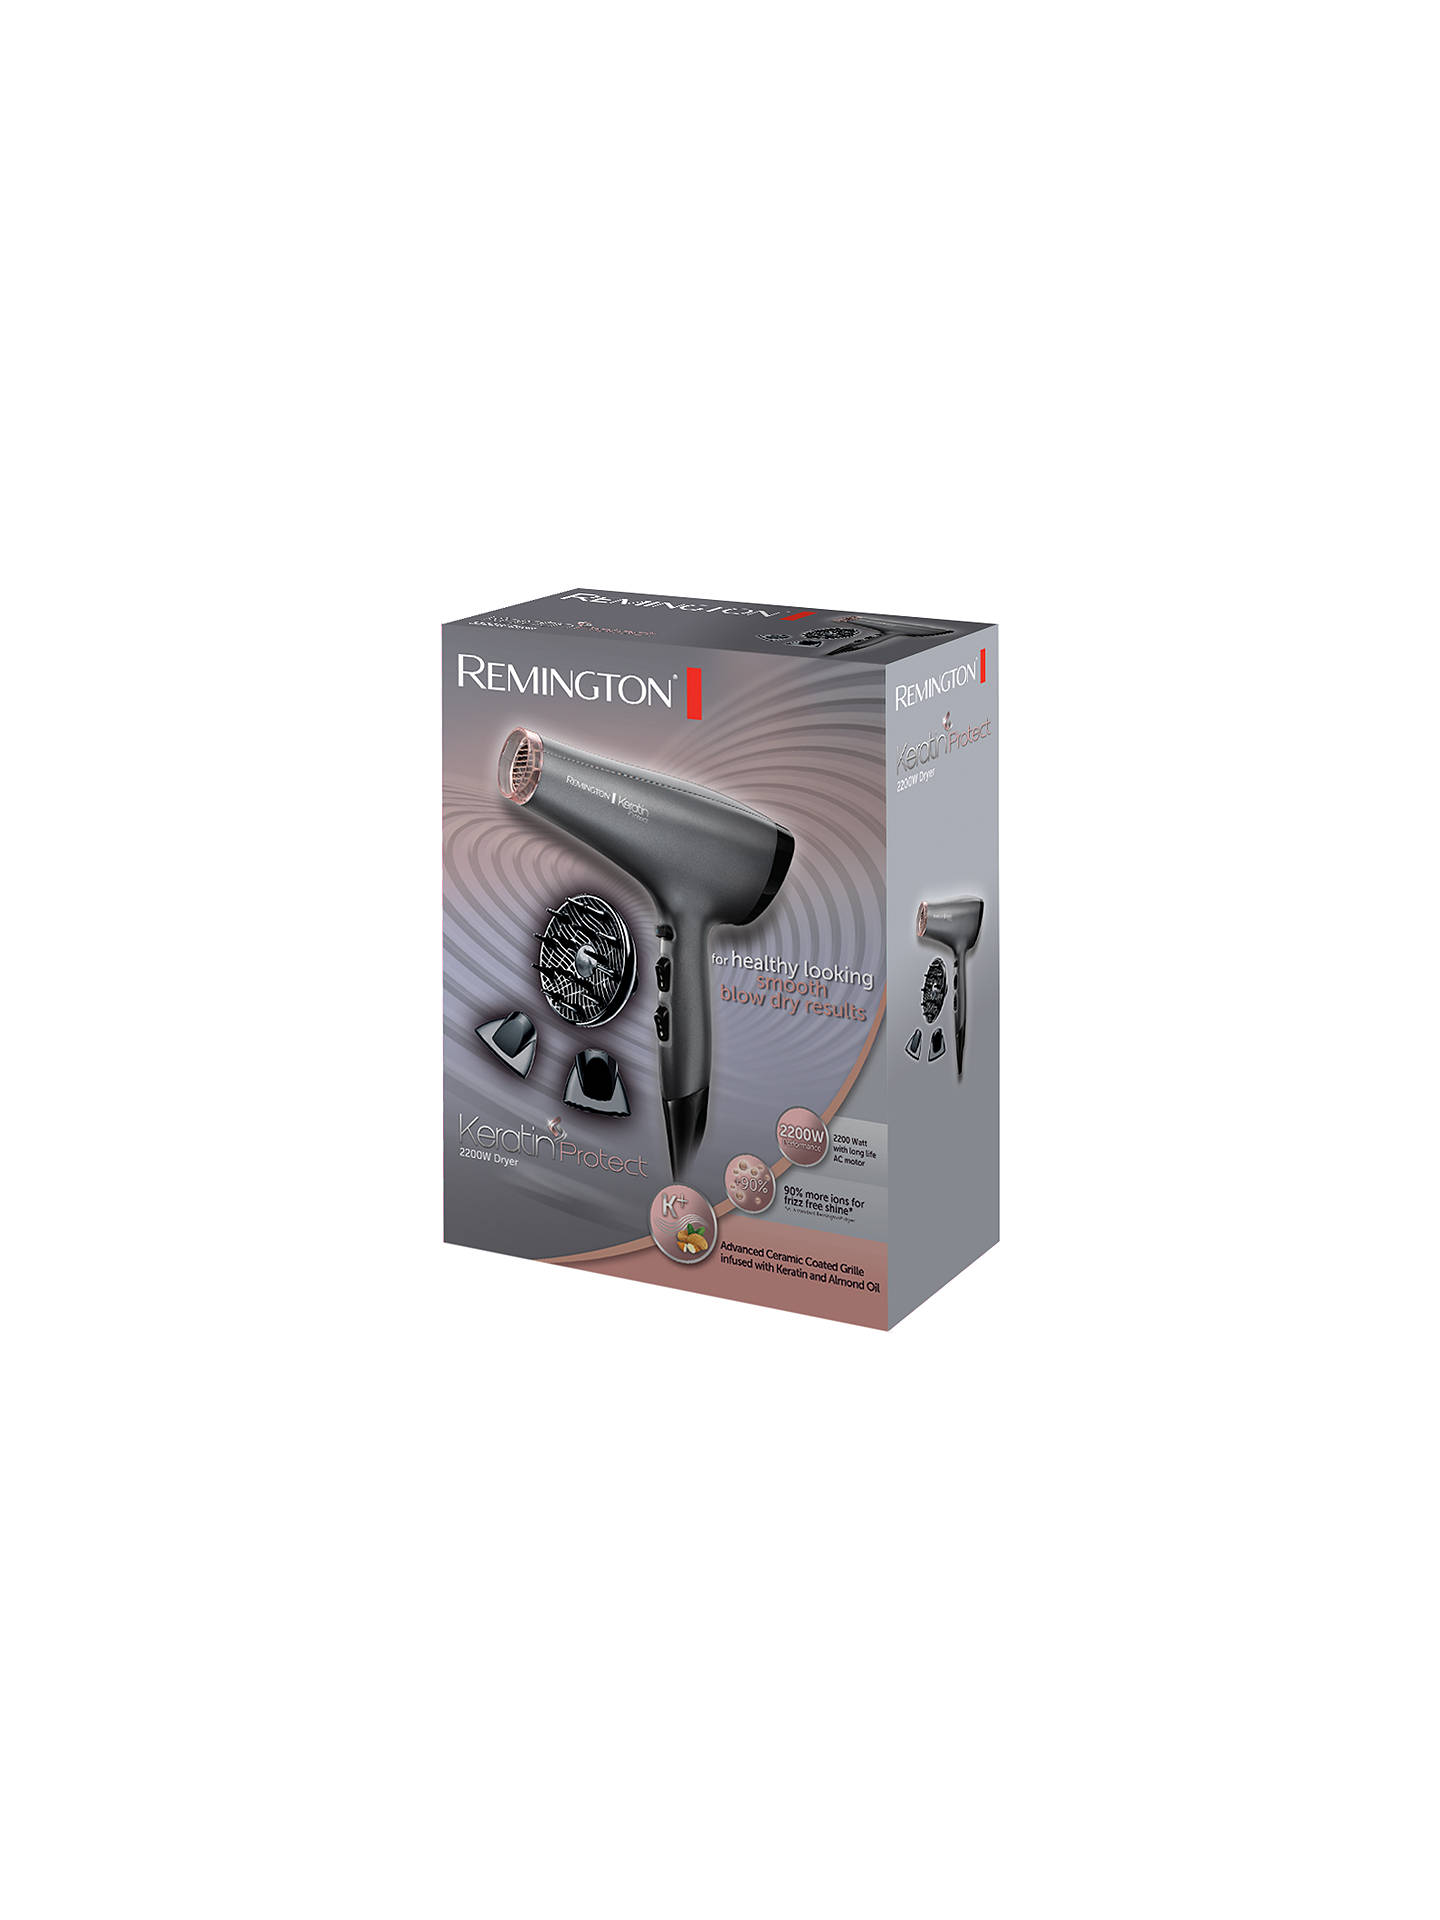 Buy Remington AC8008 Keratin Pro Hair Dryer, Grey Online at johnlewis.com